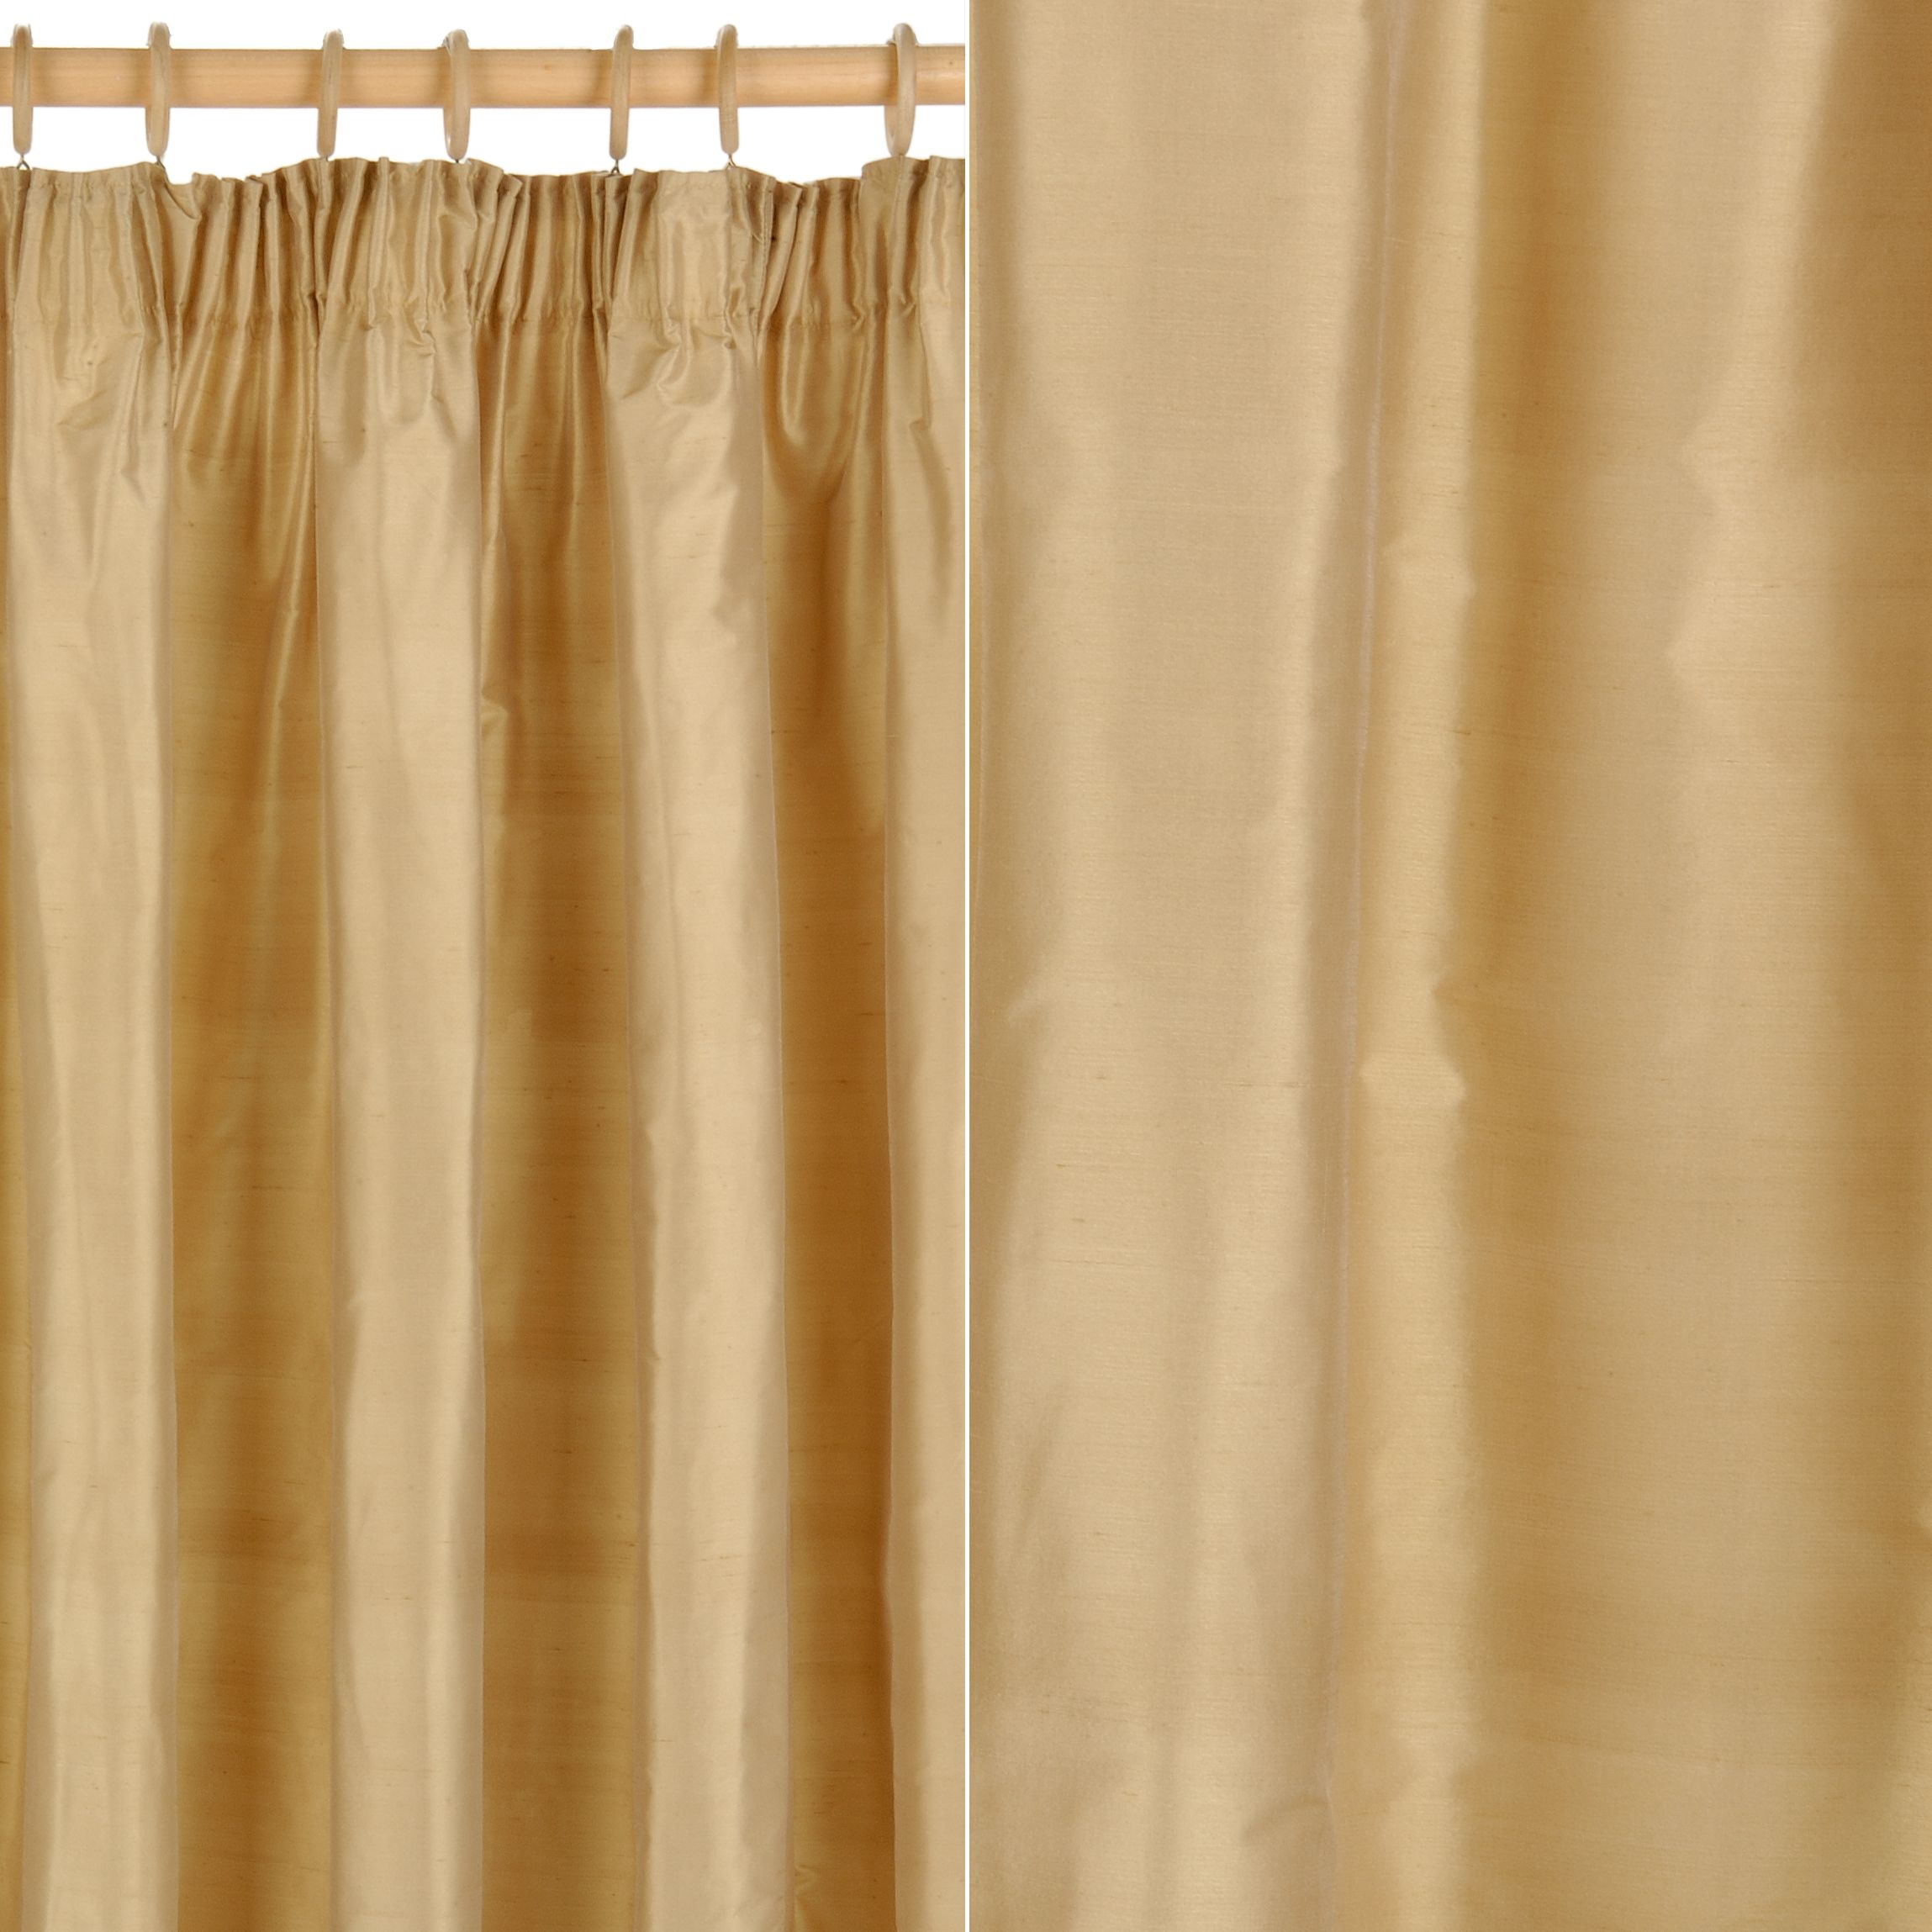 Lightweight Fabric For Curtains John Lewis Plain Silk Pencil Pleat Curtains Gold Review